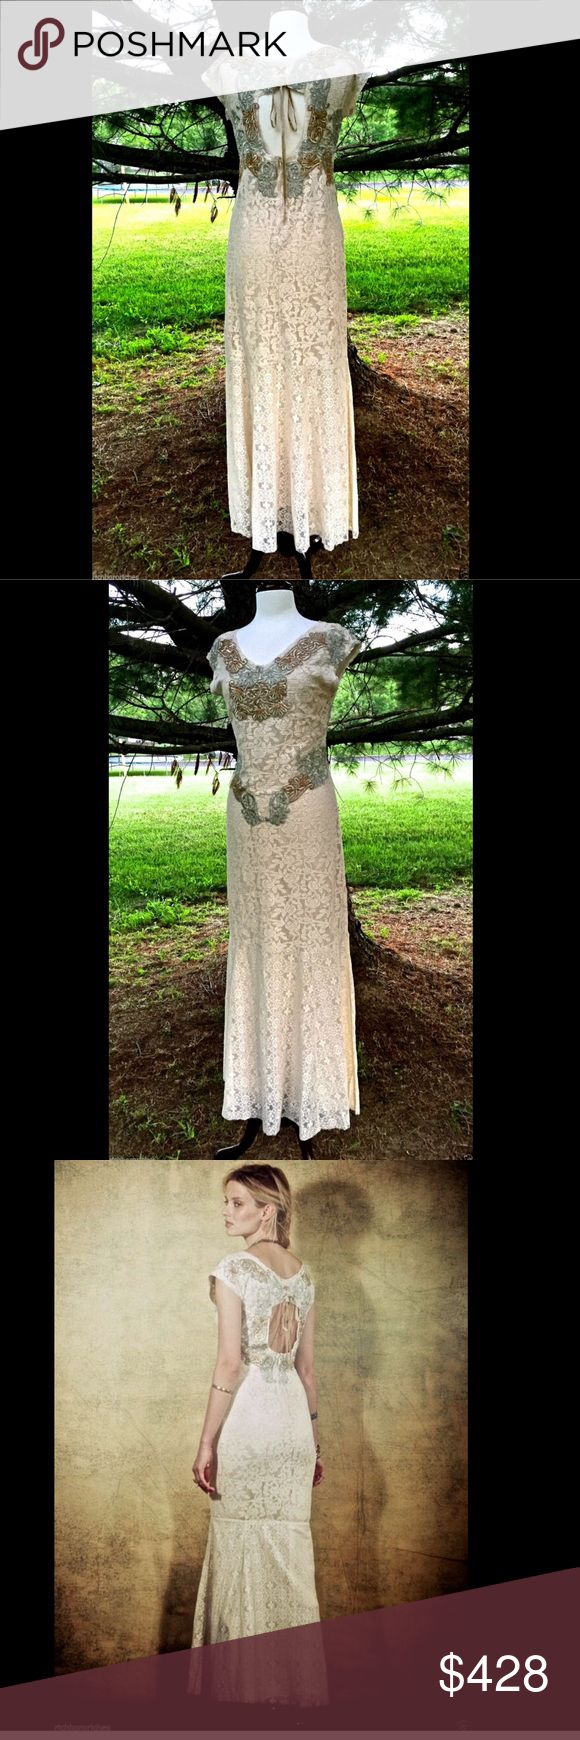 Selling this Free People ivory lace Limited Edition Dress 6 in my Poshmark closet! My username is: richbororiches. #shopmycloset #poshmark #fashion #shopping #style #forsale #Free People #Dresses & Skirts